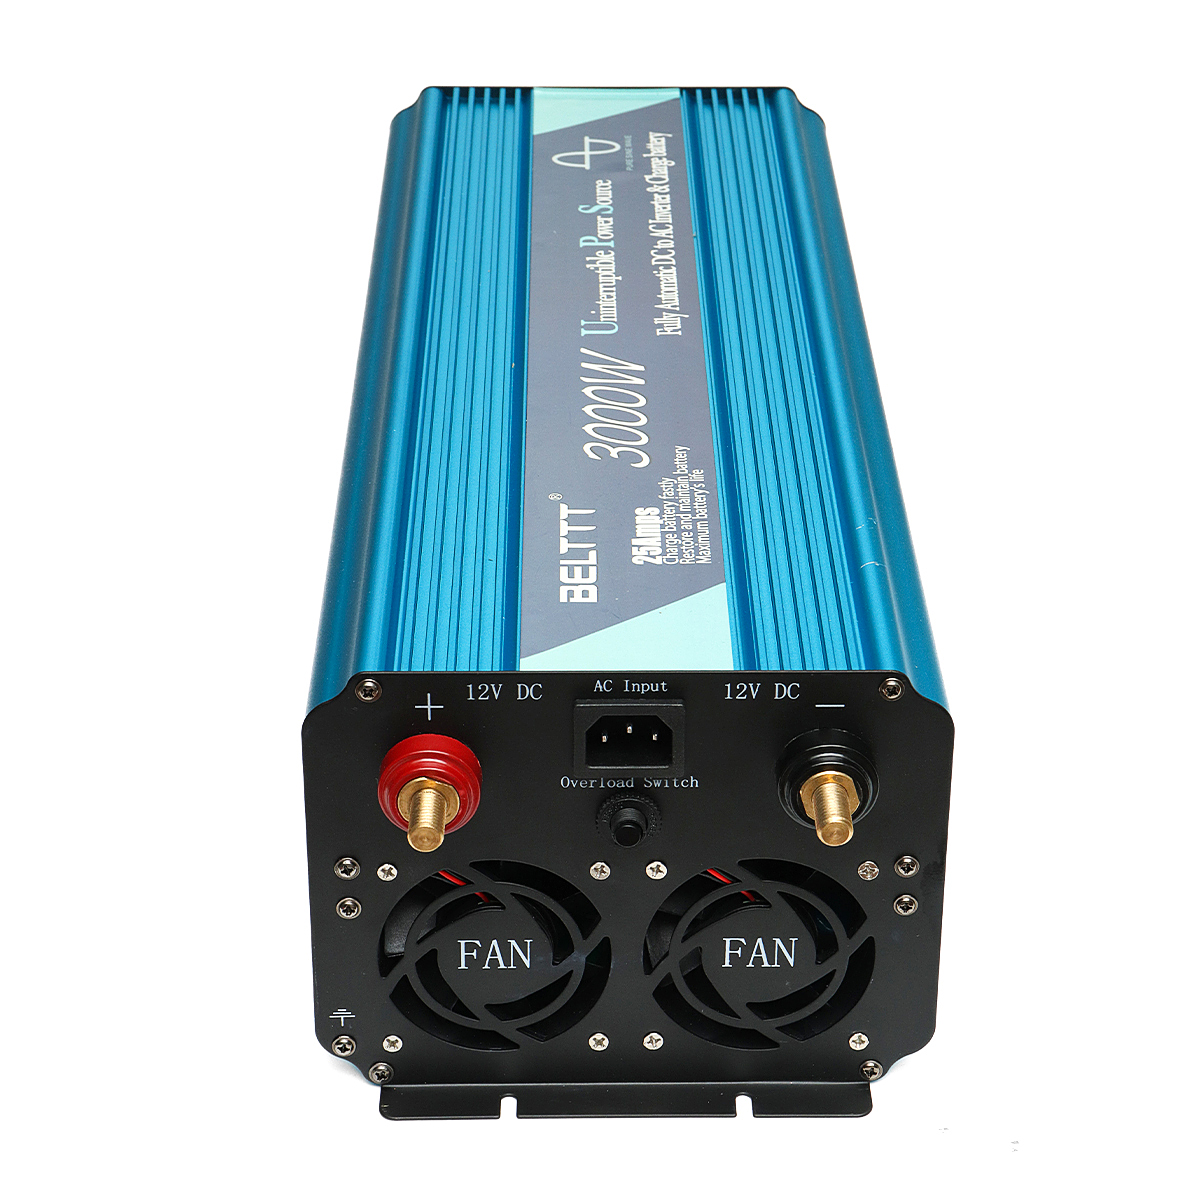 BELTTT 6000W 12V/24V To 220V Pure Sine Wave Power Inverter Battery Charger UPS Converter